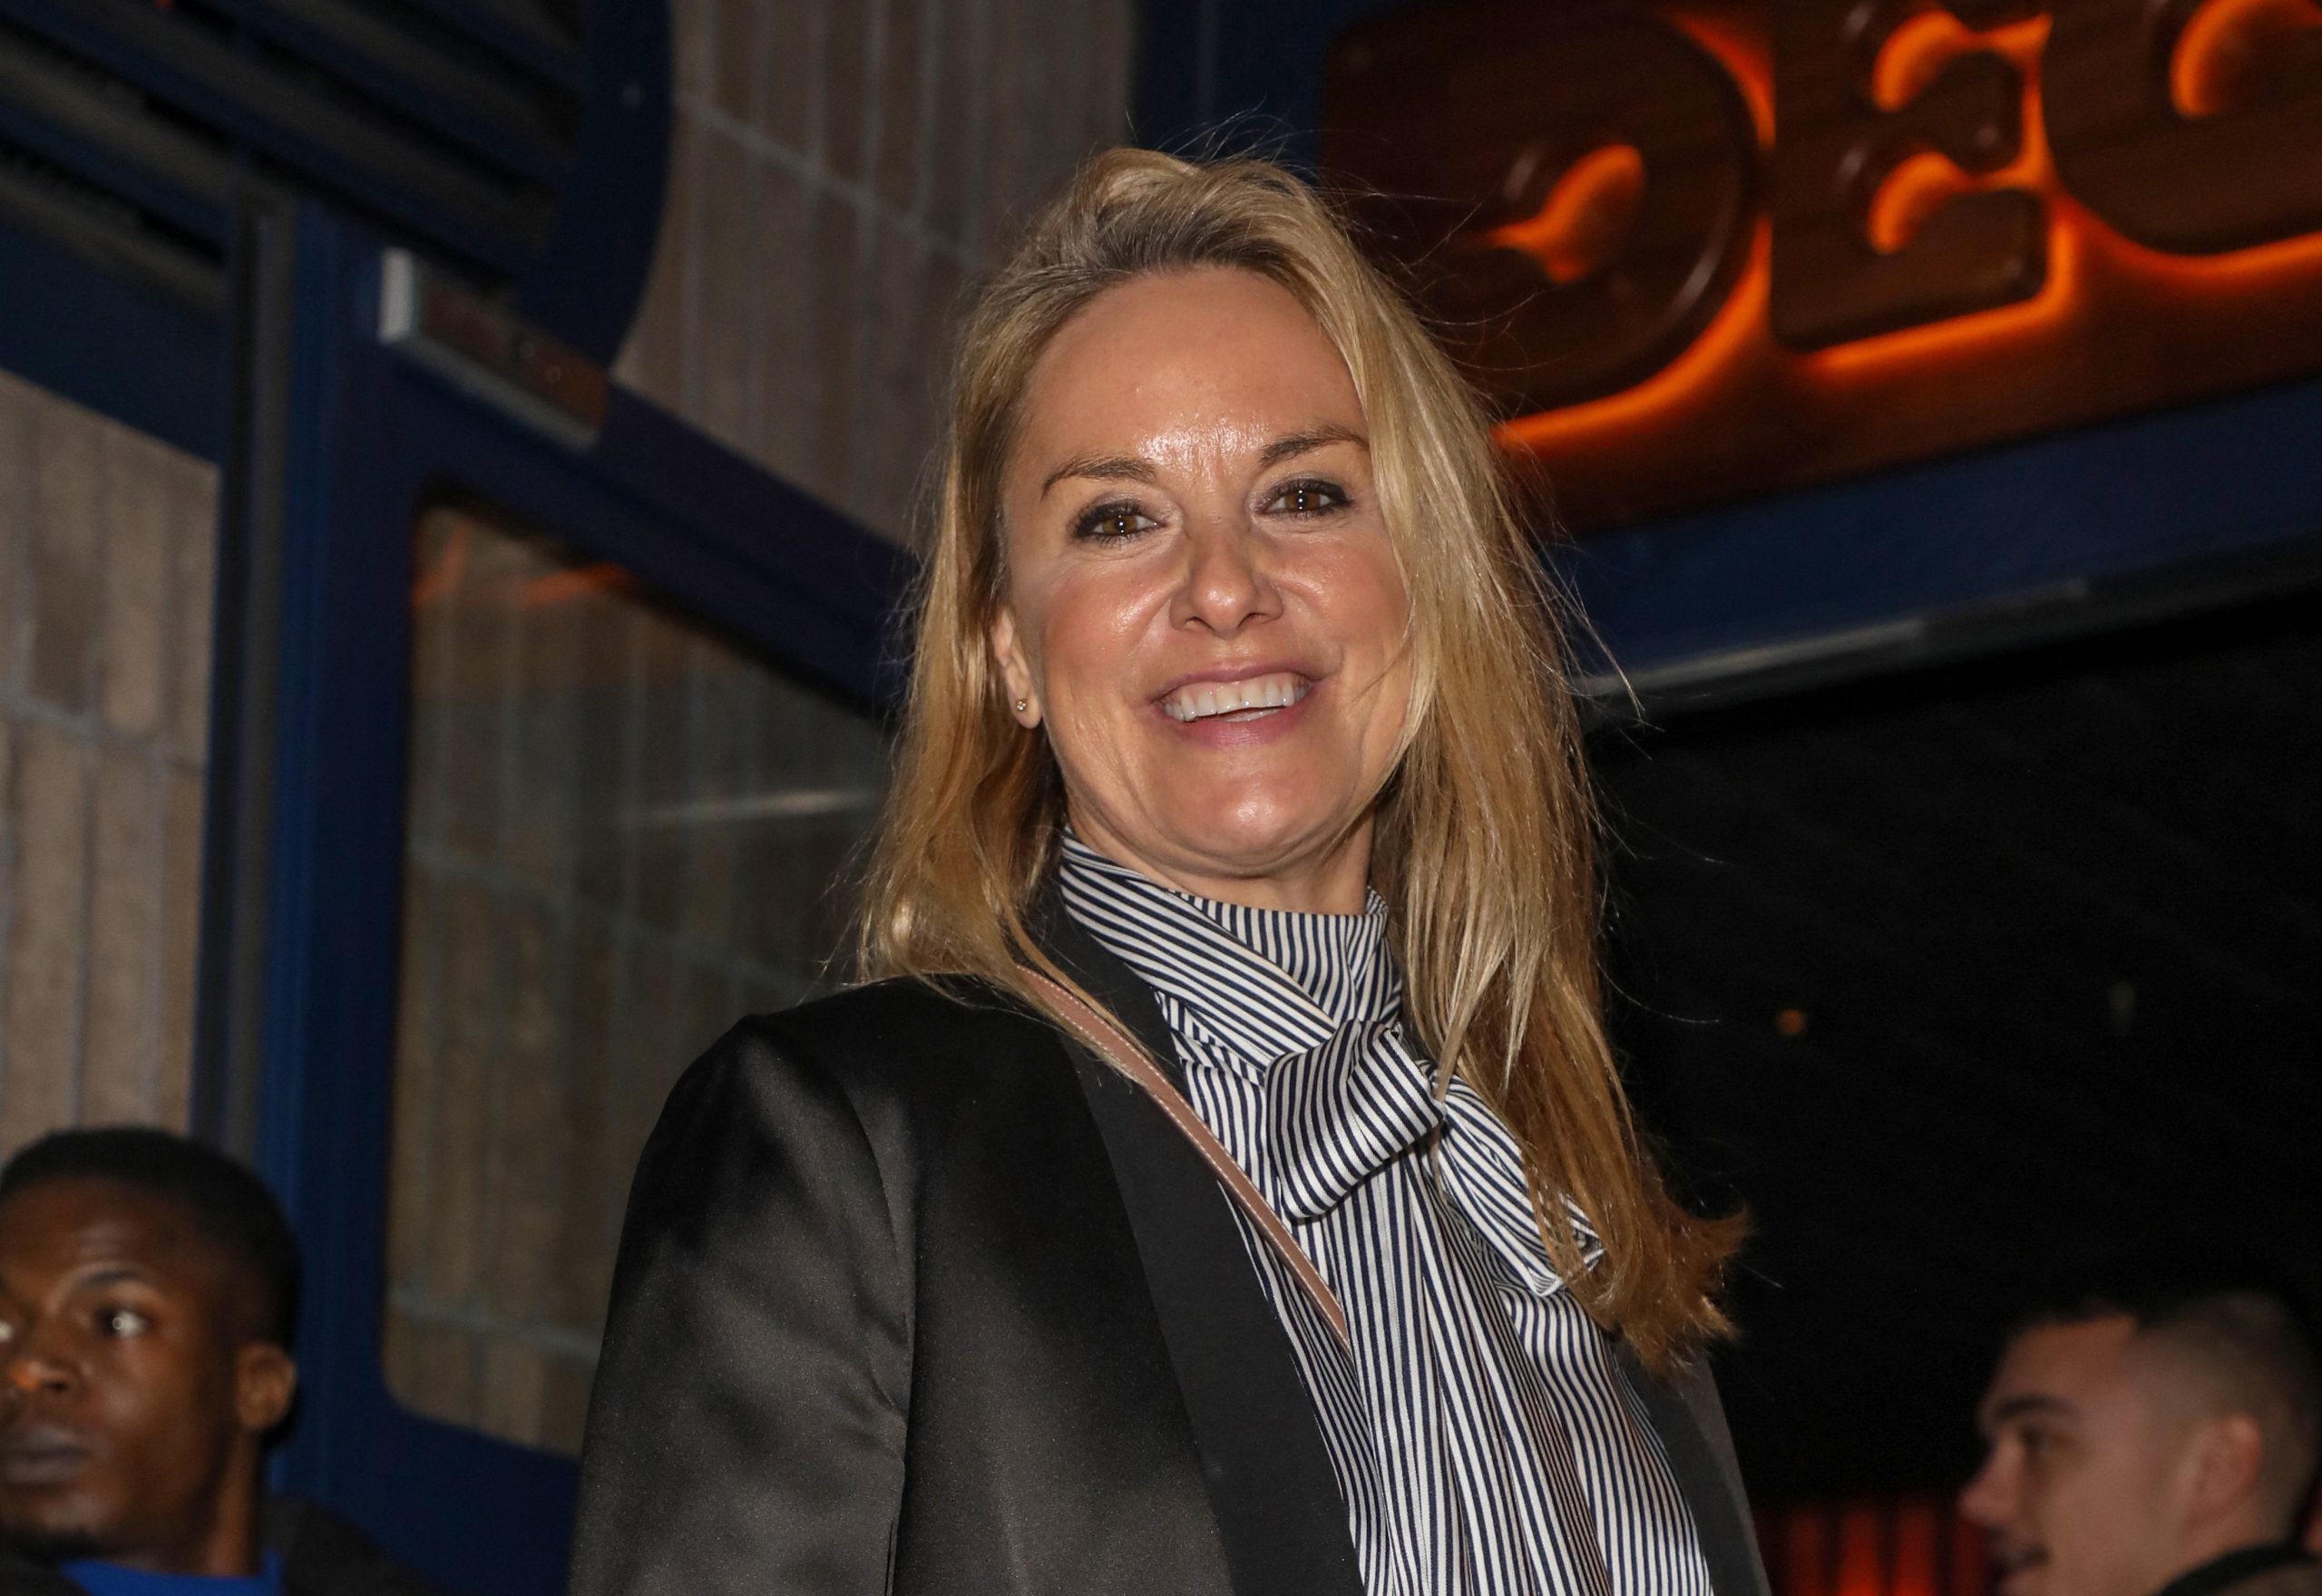 Former EastEnders star Tamzin Outhwaite reveals seven-year-old daughter has dyed her hair pink